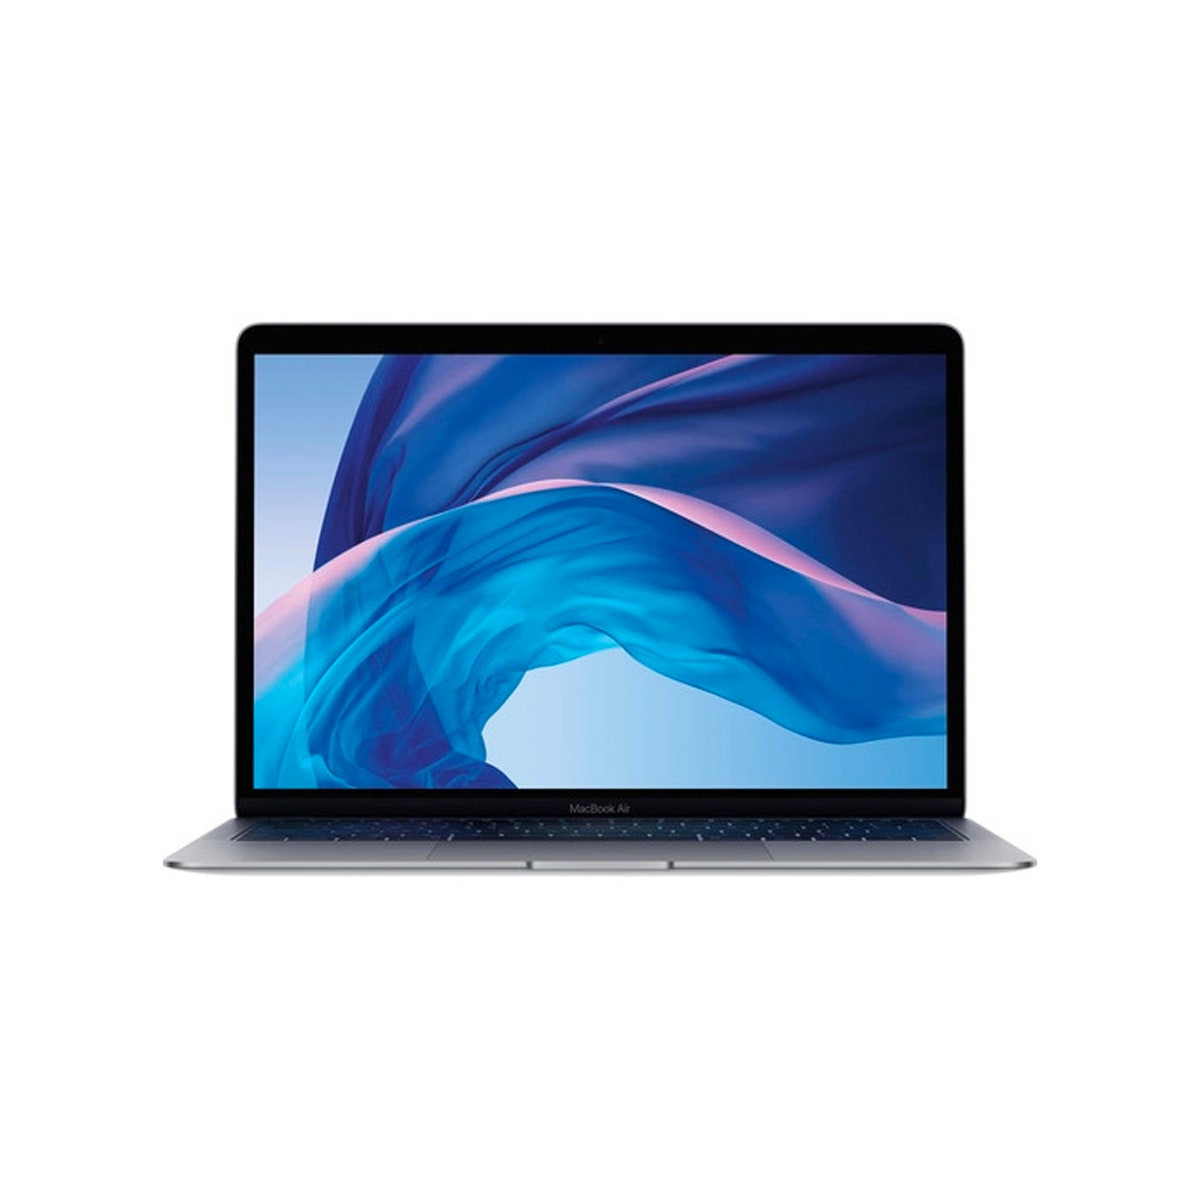 "Apple 13.3"" MacBook Air with Retina Display"